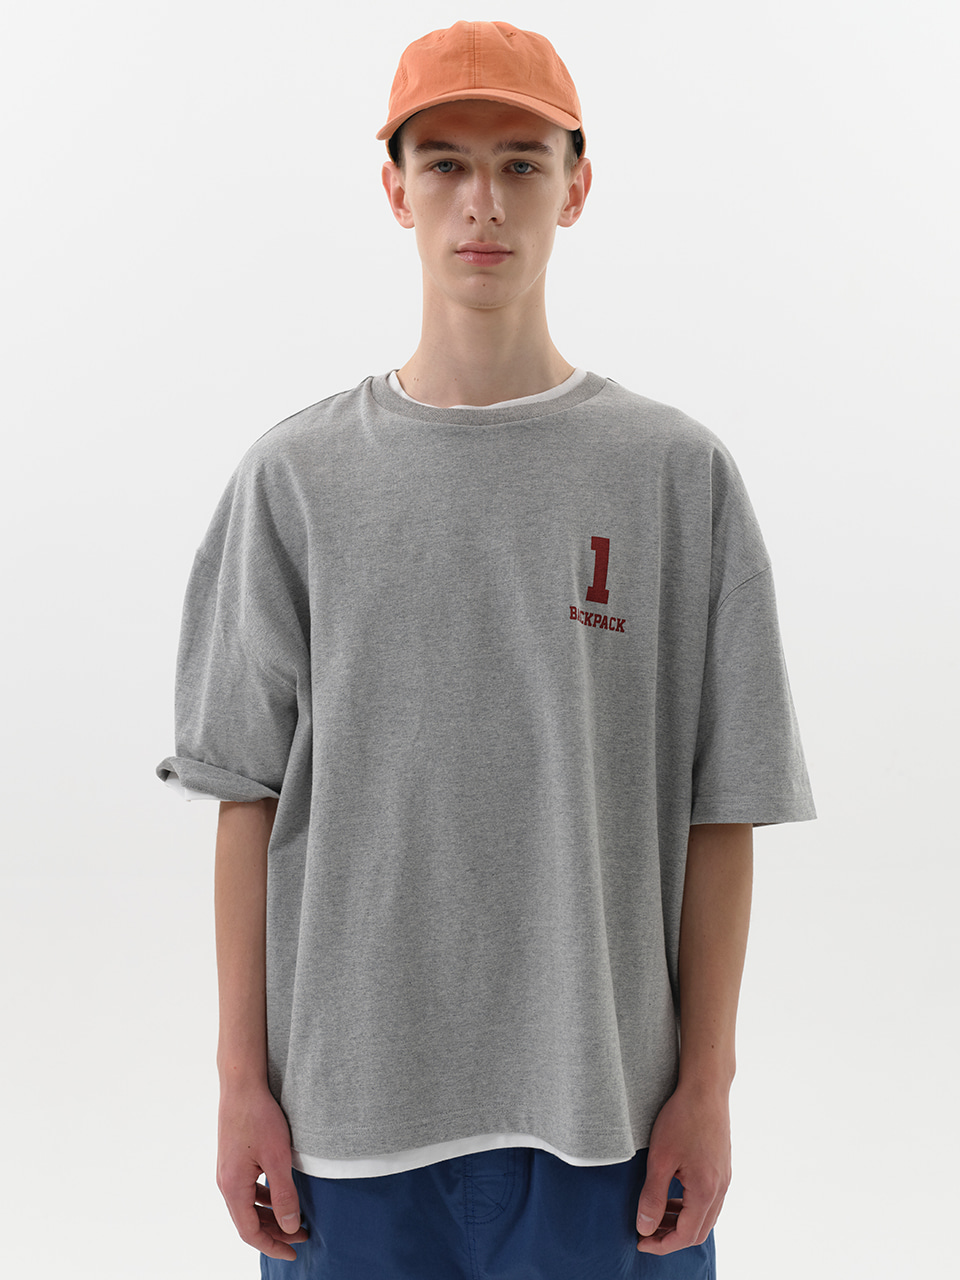 SOUNDSLIFE - 1 BACKPACK Tee Melange Grey